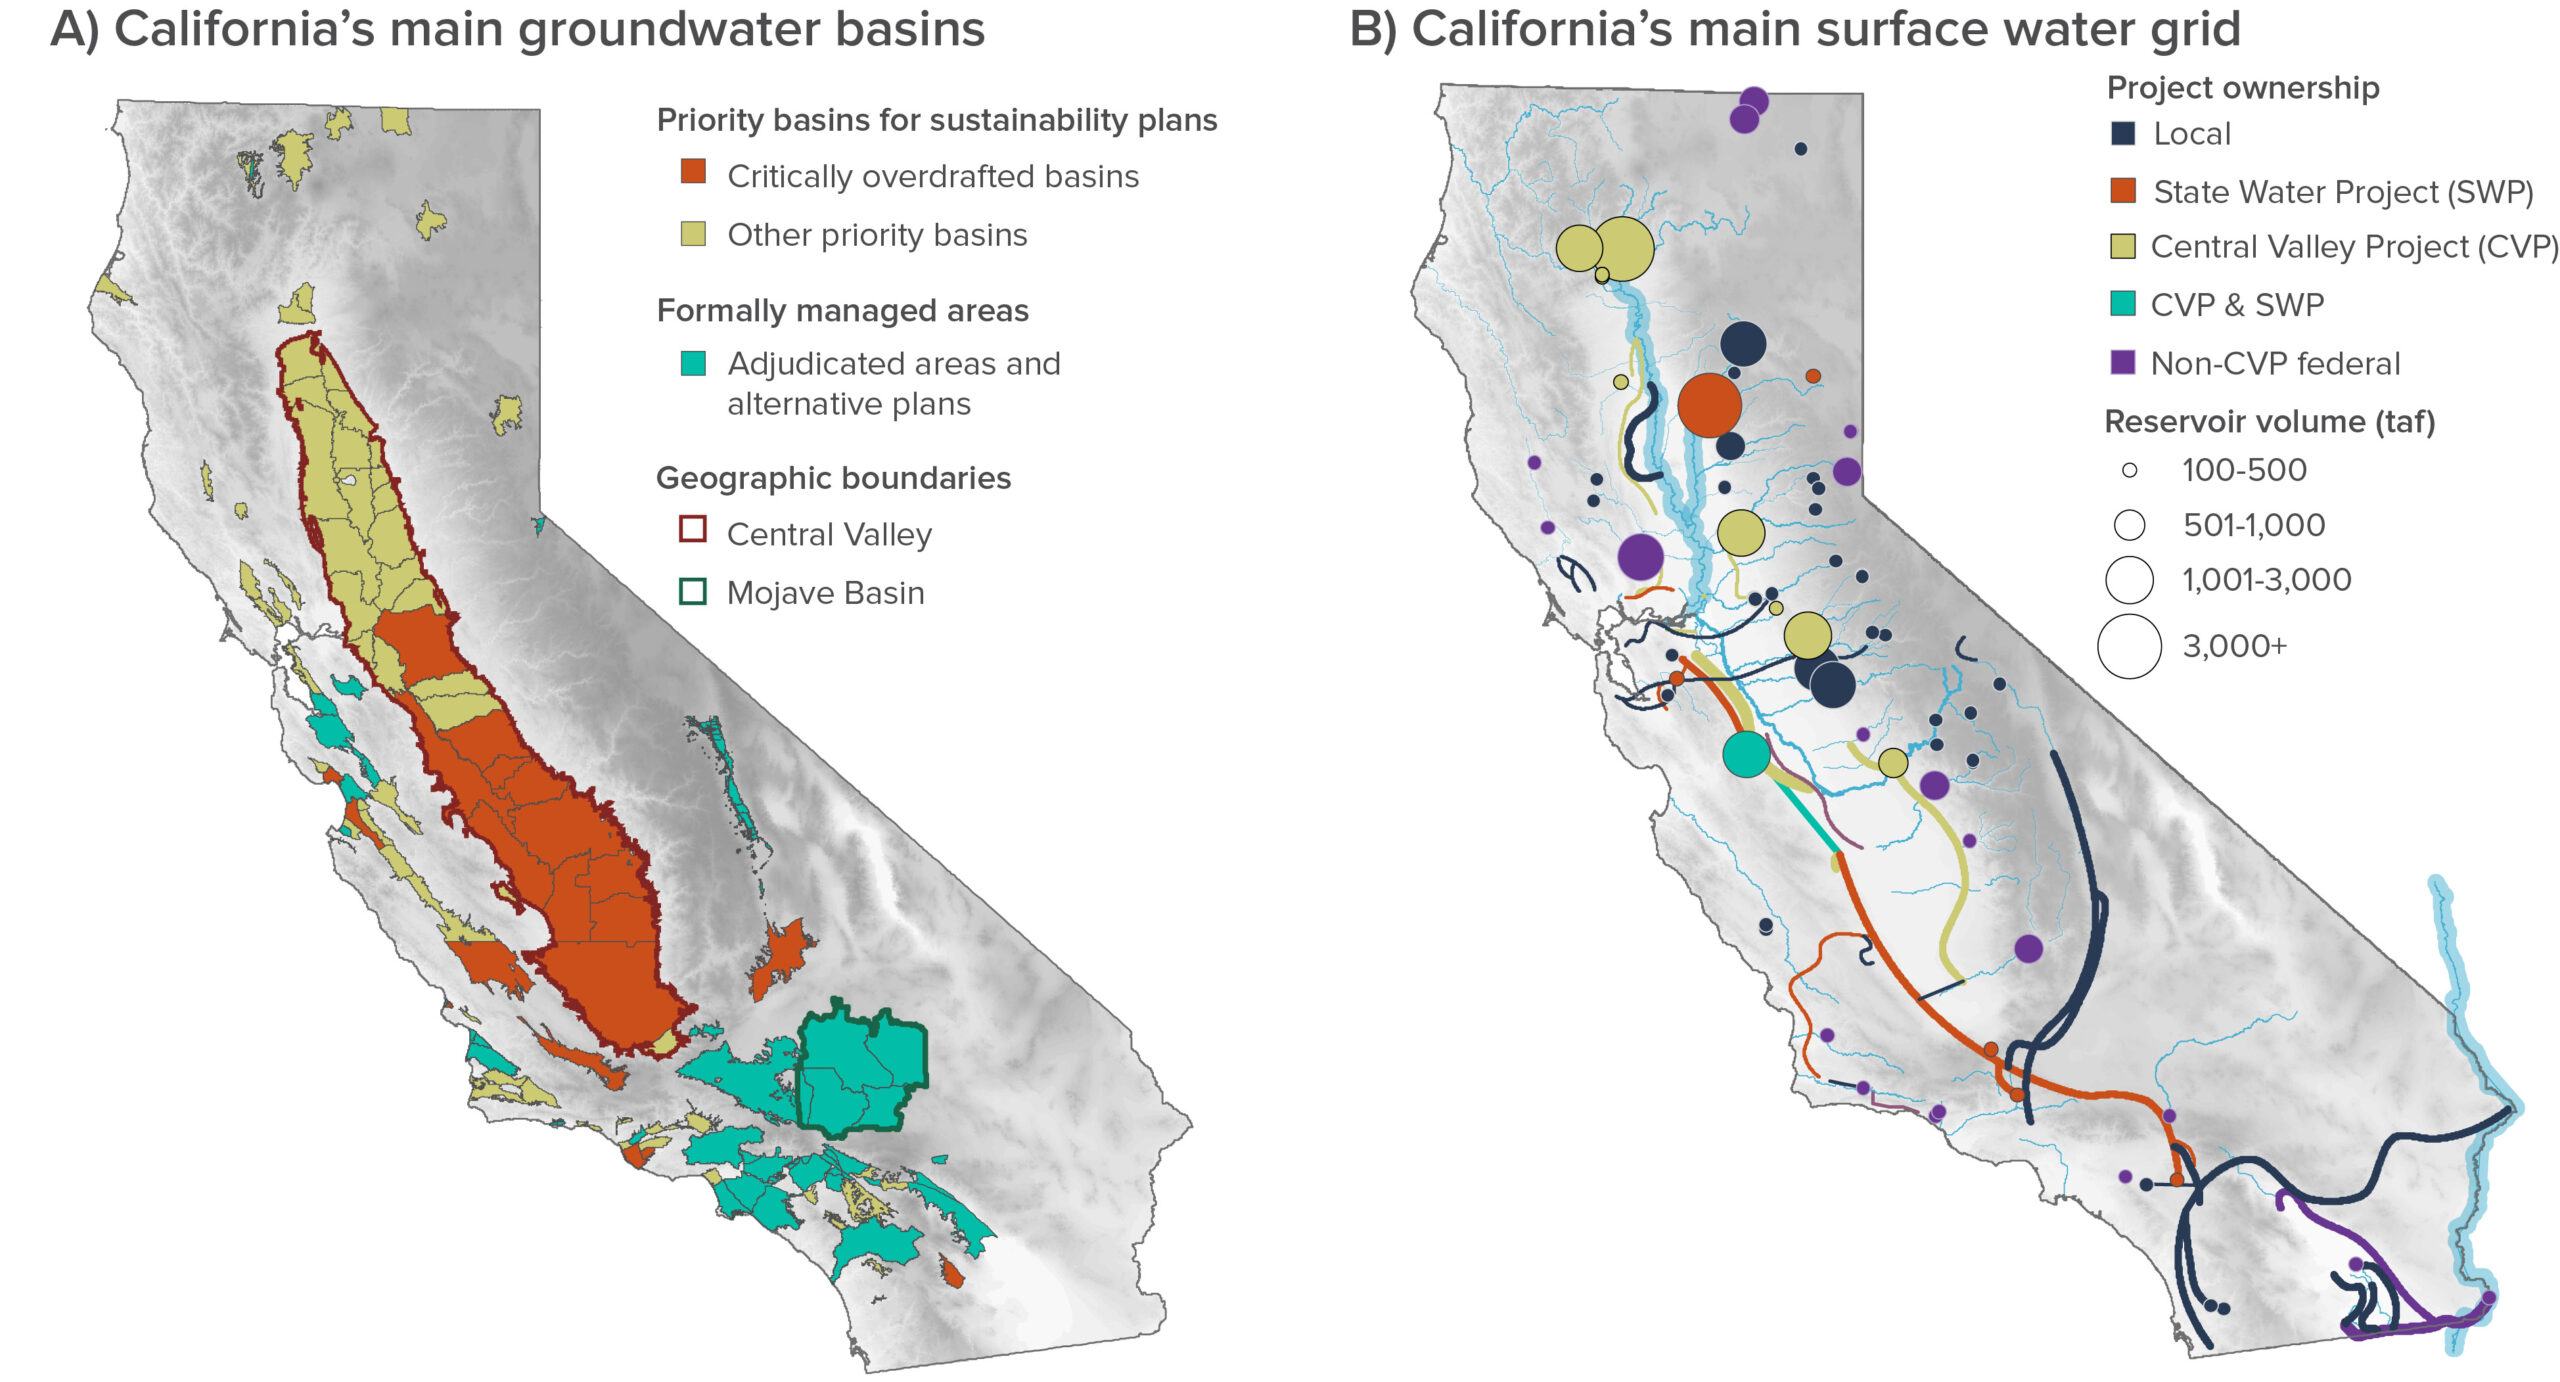 figure - Basins in the Central Valley are more connected to each other and to surface water conveyance